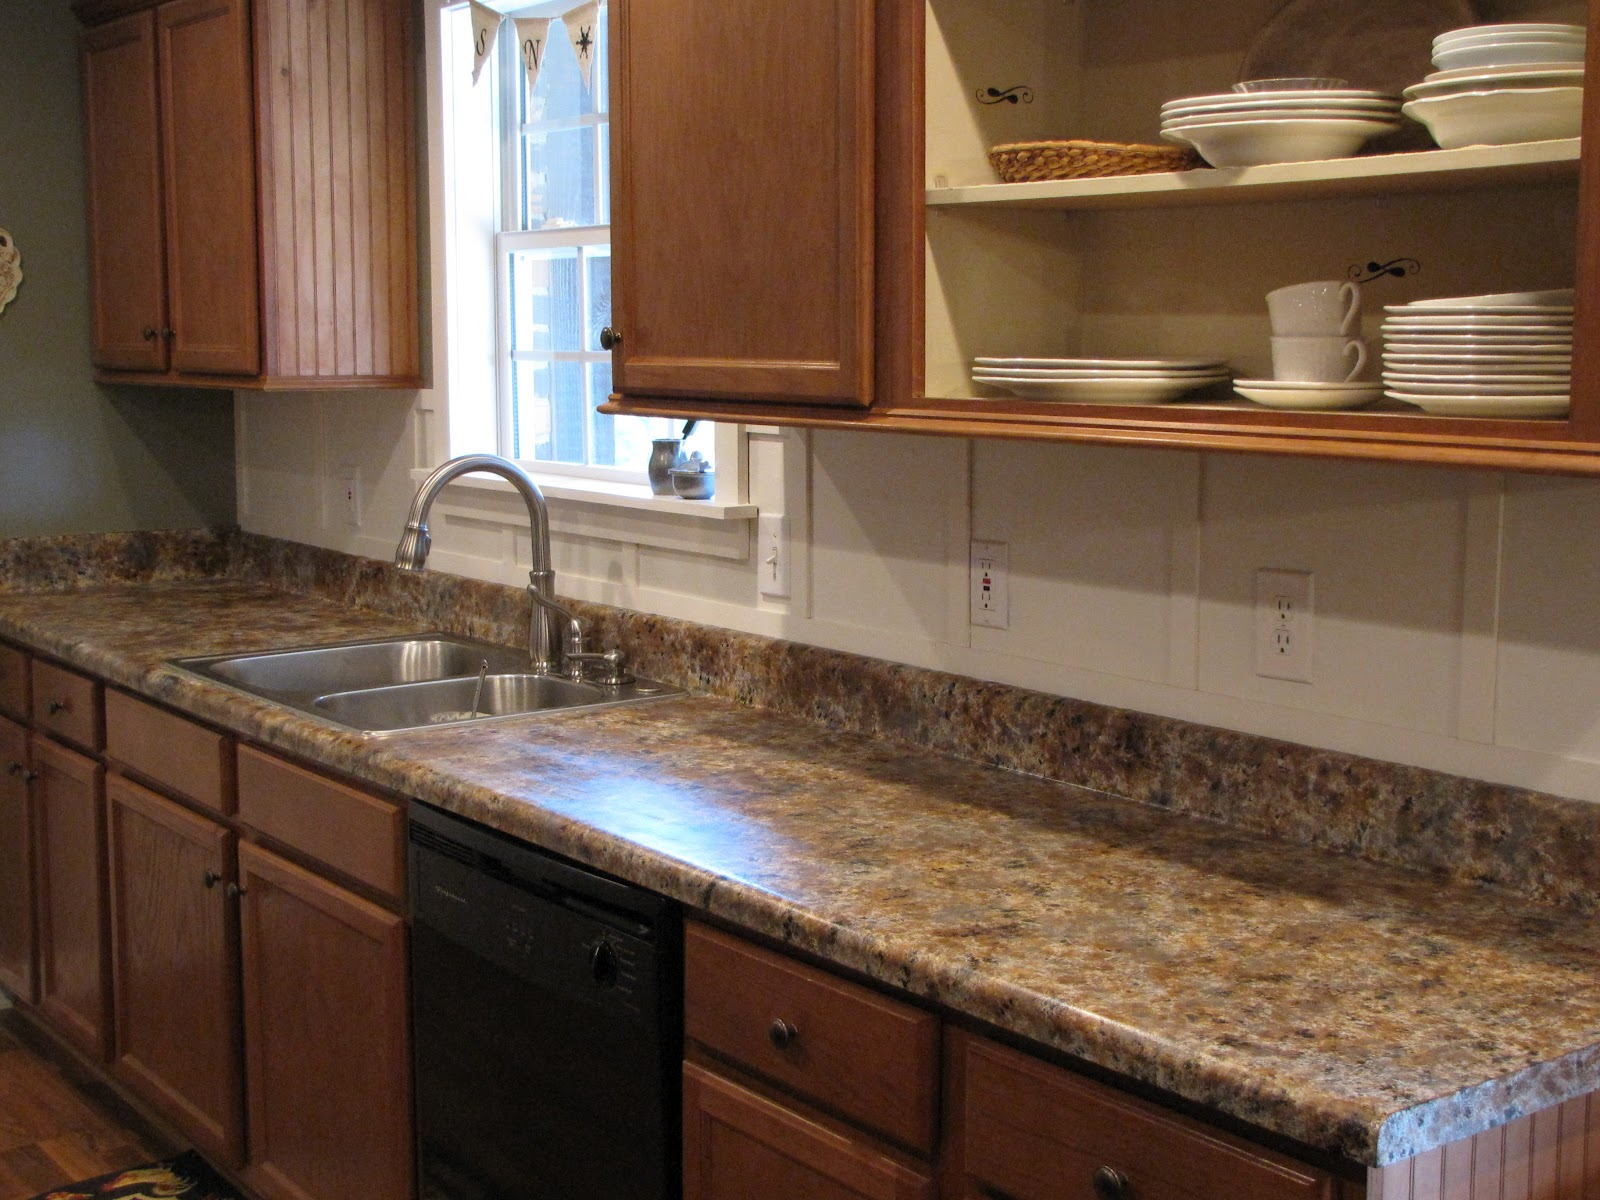 Countertop Kitchen : Painting Laminate Countertops In The Kitchen